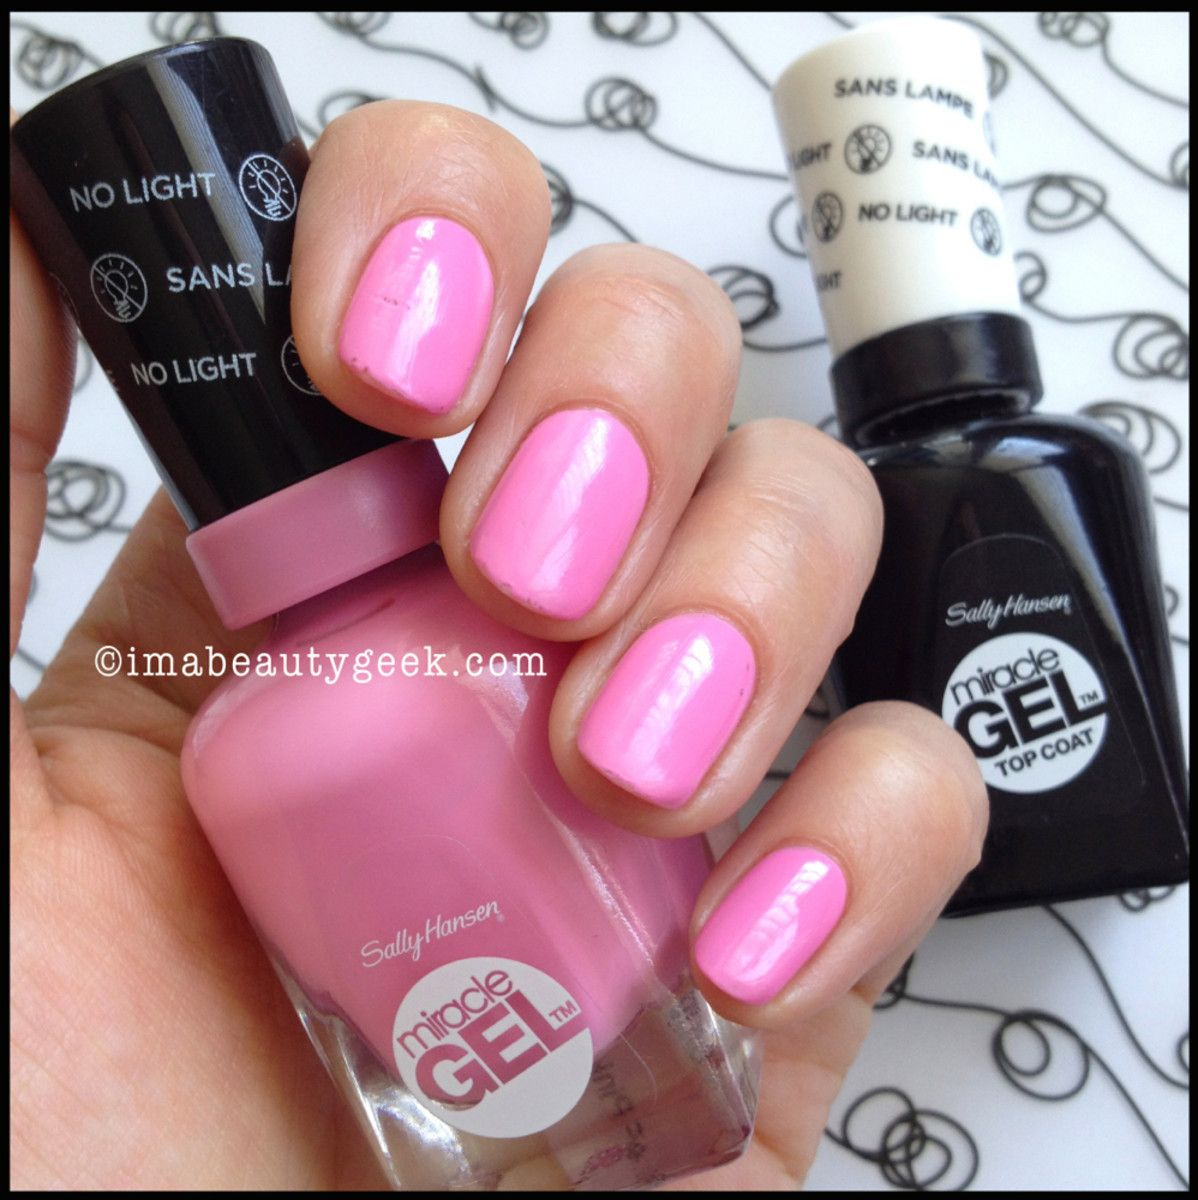 SALLY HANSEN MIRACLE GEL REVIEW + COLOR COLLECTION SWATCHES